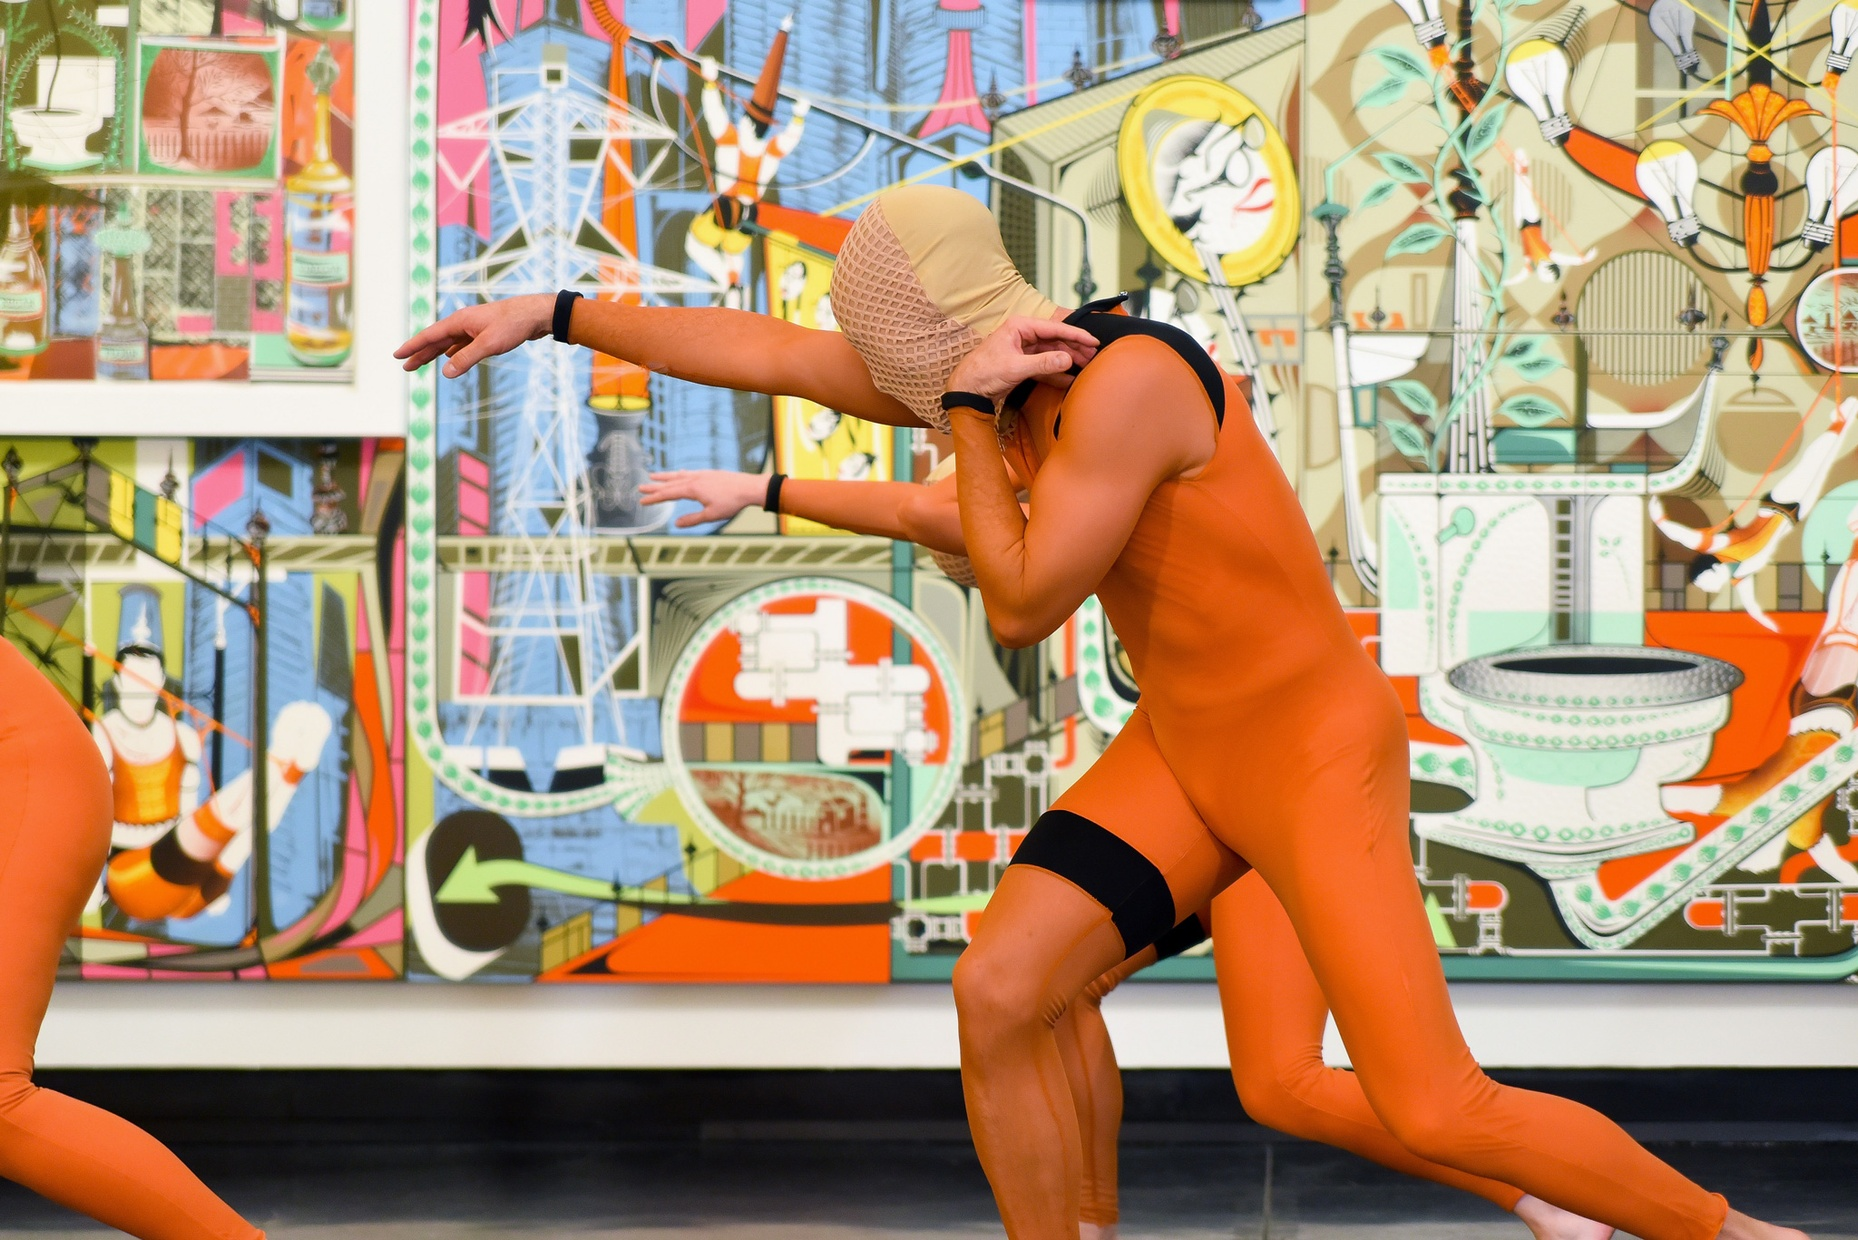 A figure in an orange jumpsuit with a covered face poses in front of a colorful painting.